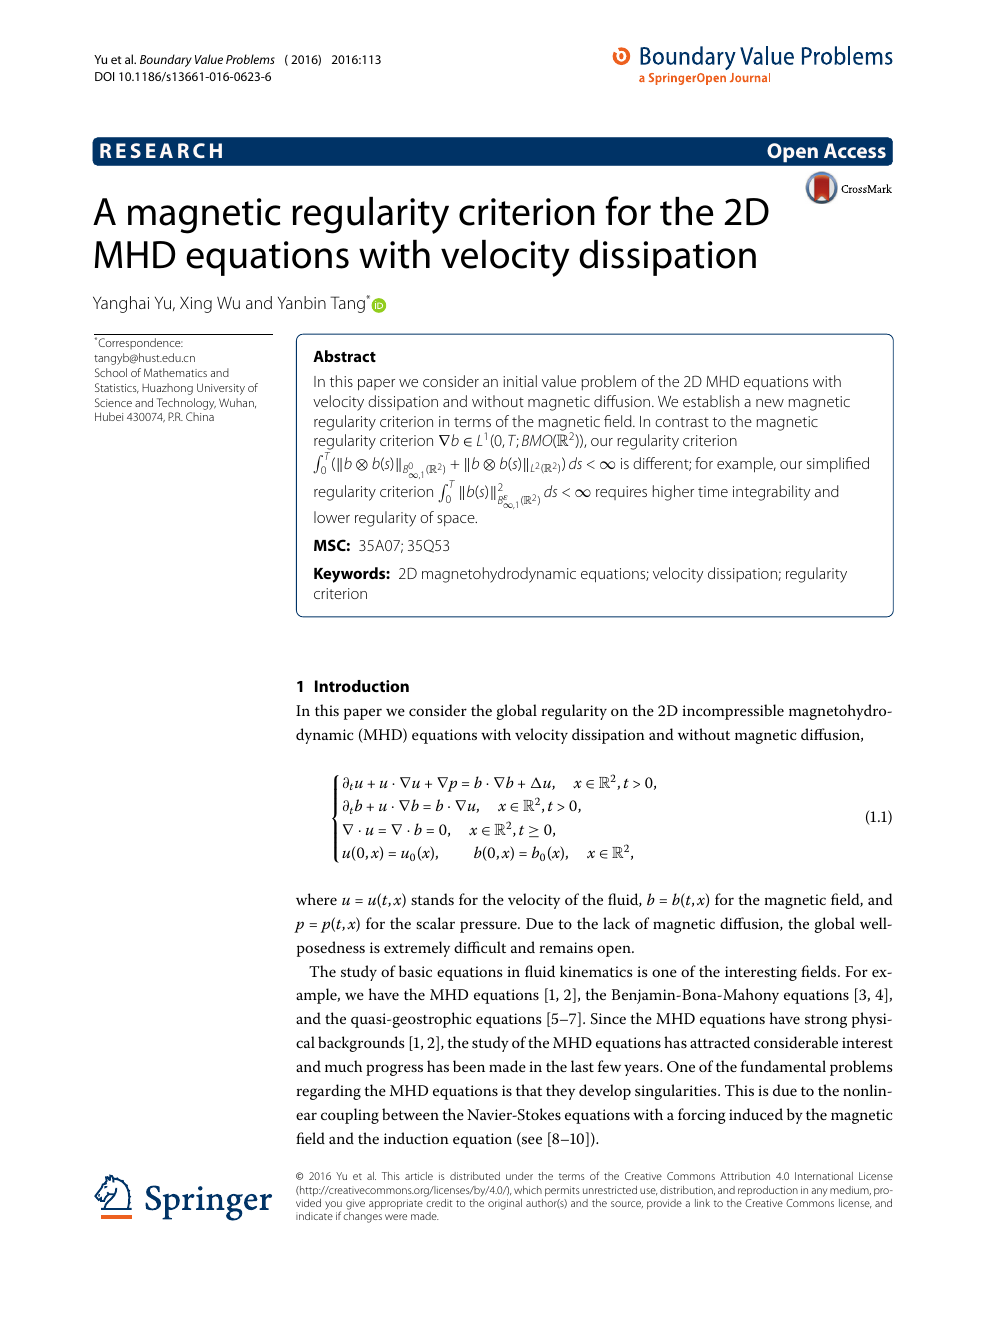 A magnetic regularity criterion for the 2D MHD equations